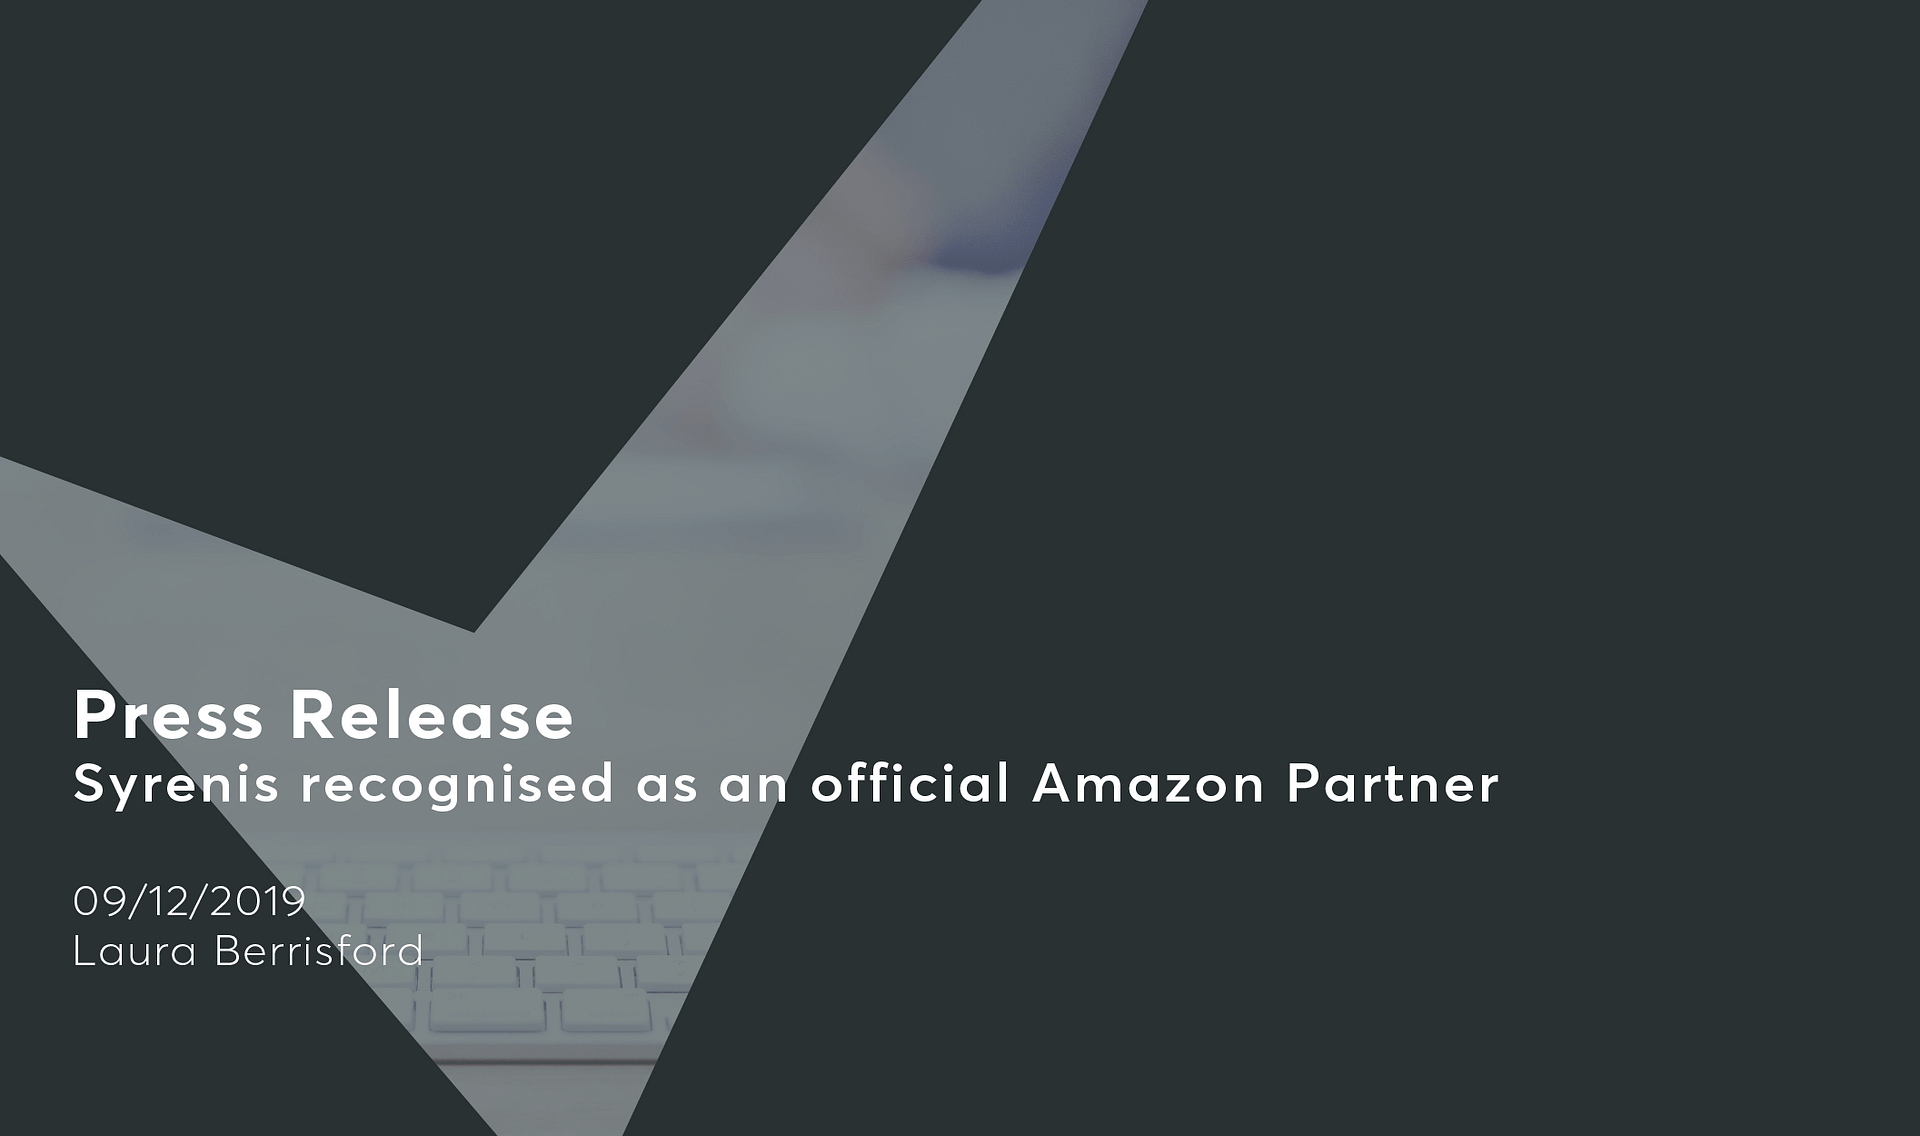 Syrenis-recognised-as-an-official-Amazon-Partner